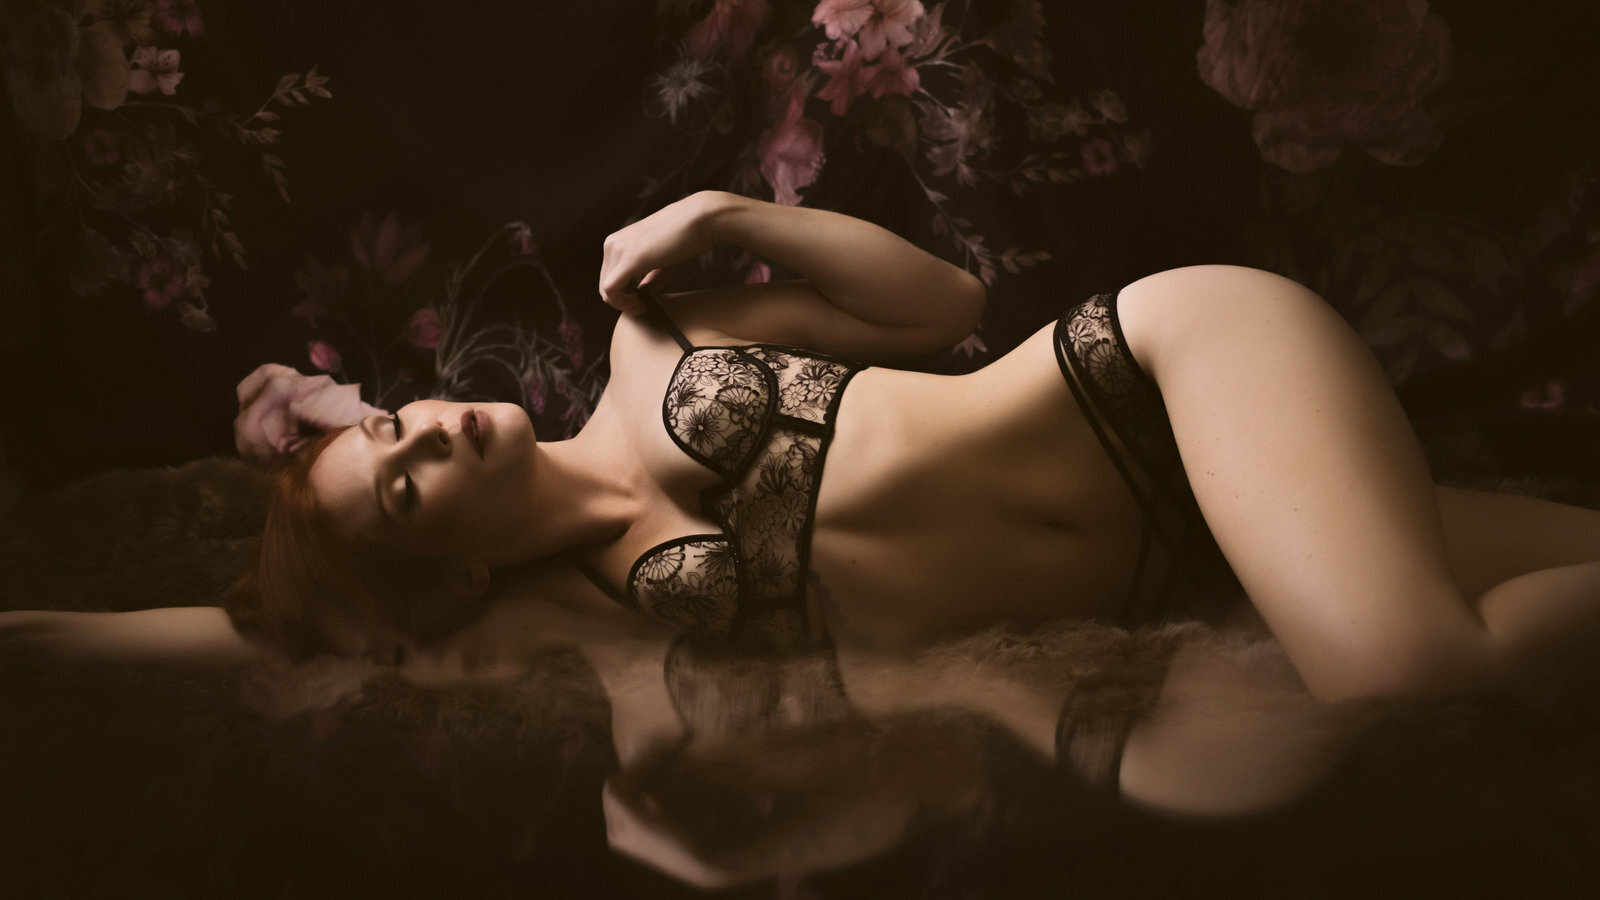 velvet_light_boudoir_photographer_savannah_4c625b2b84304e247e0ec41e5f2d1d5e